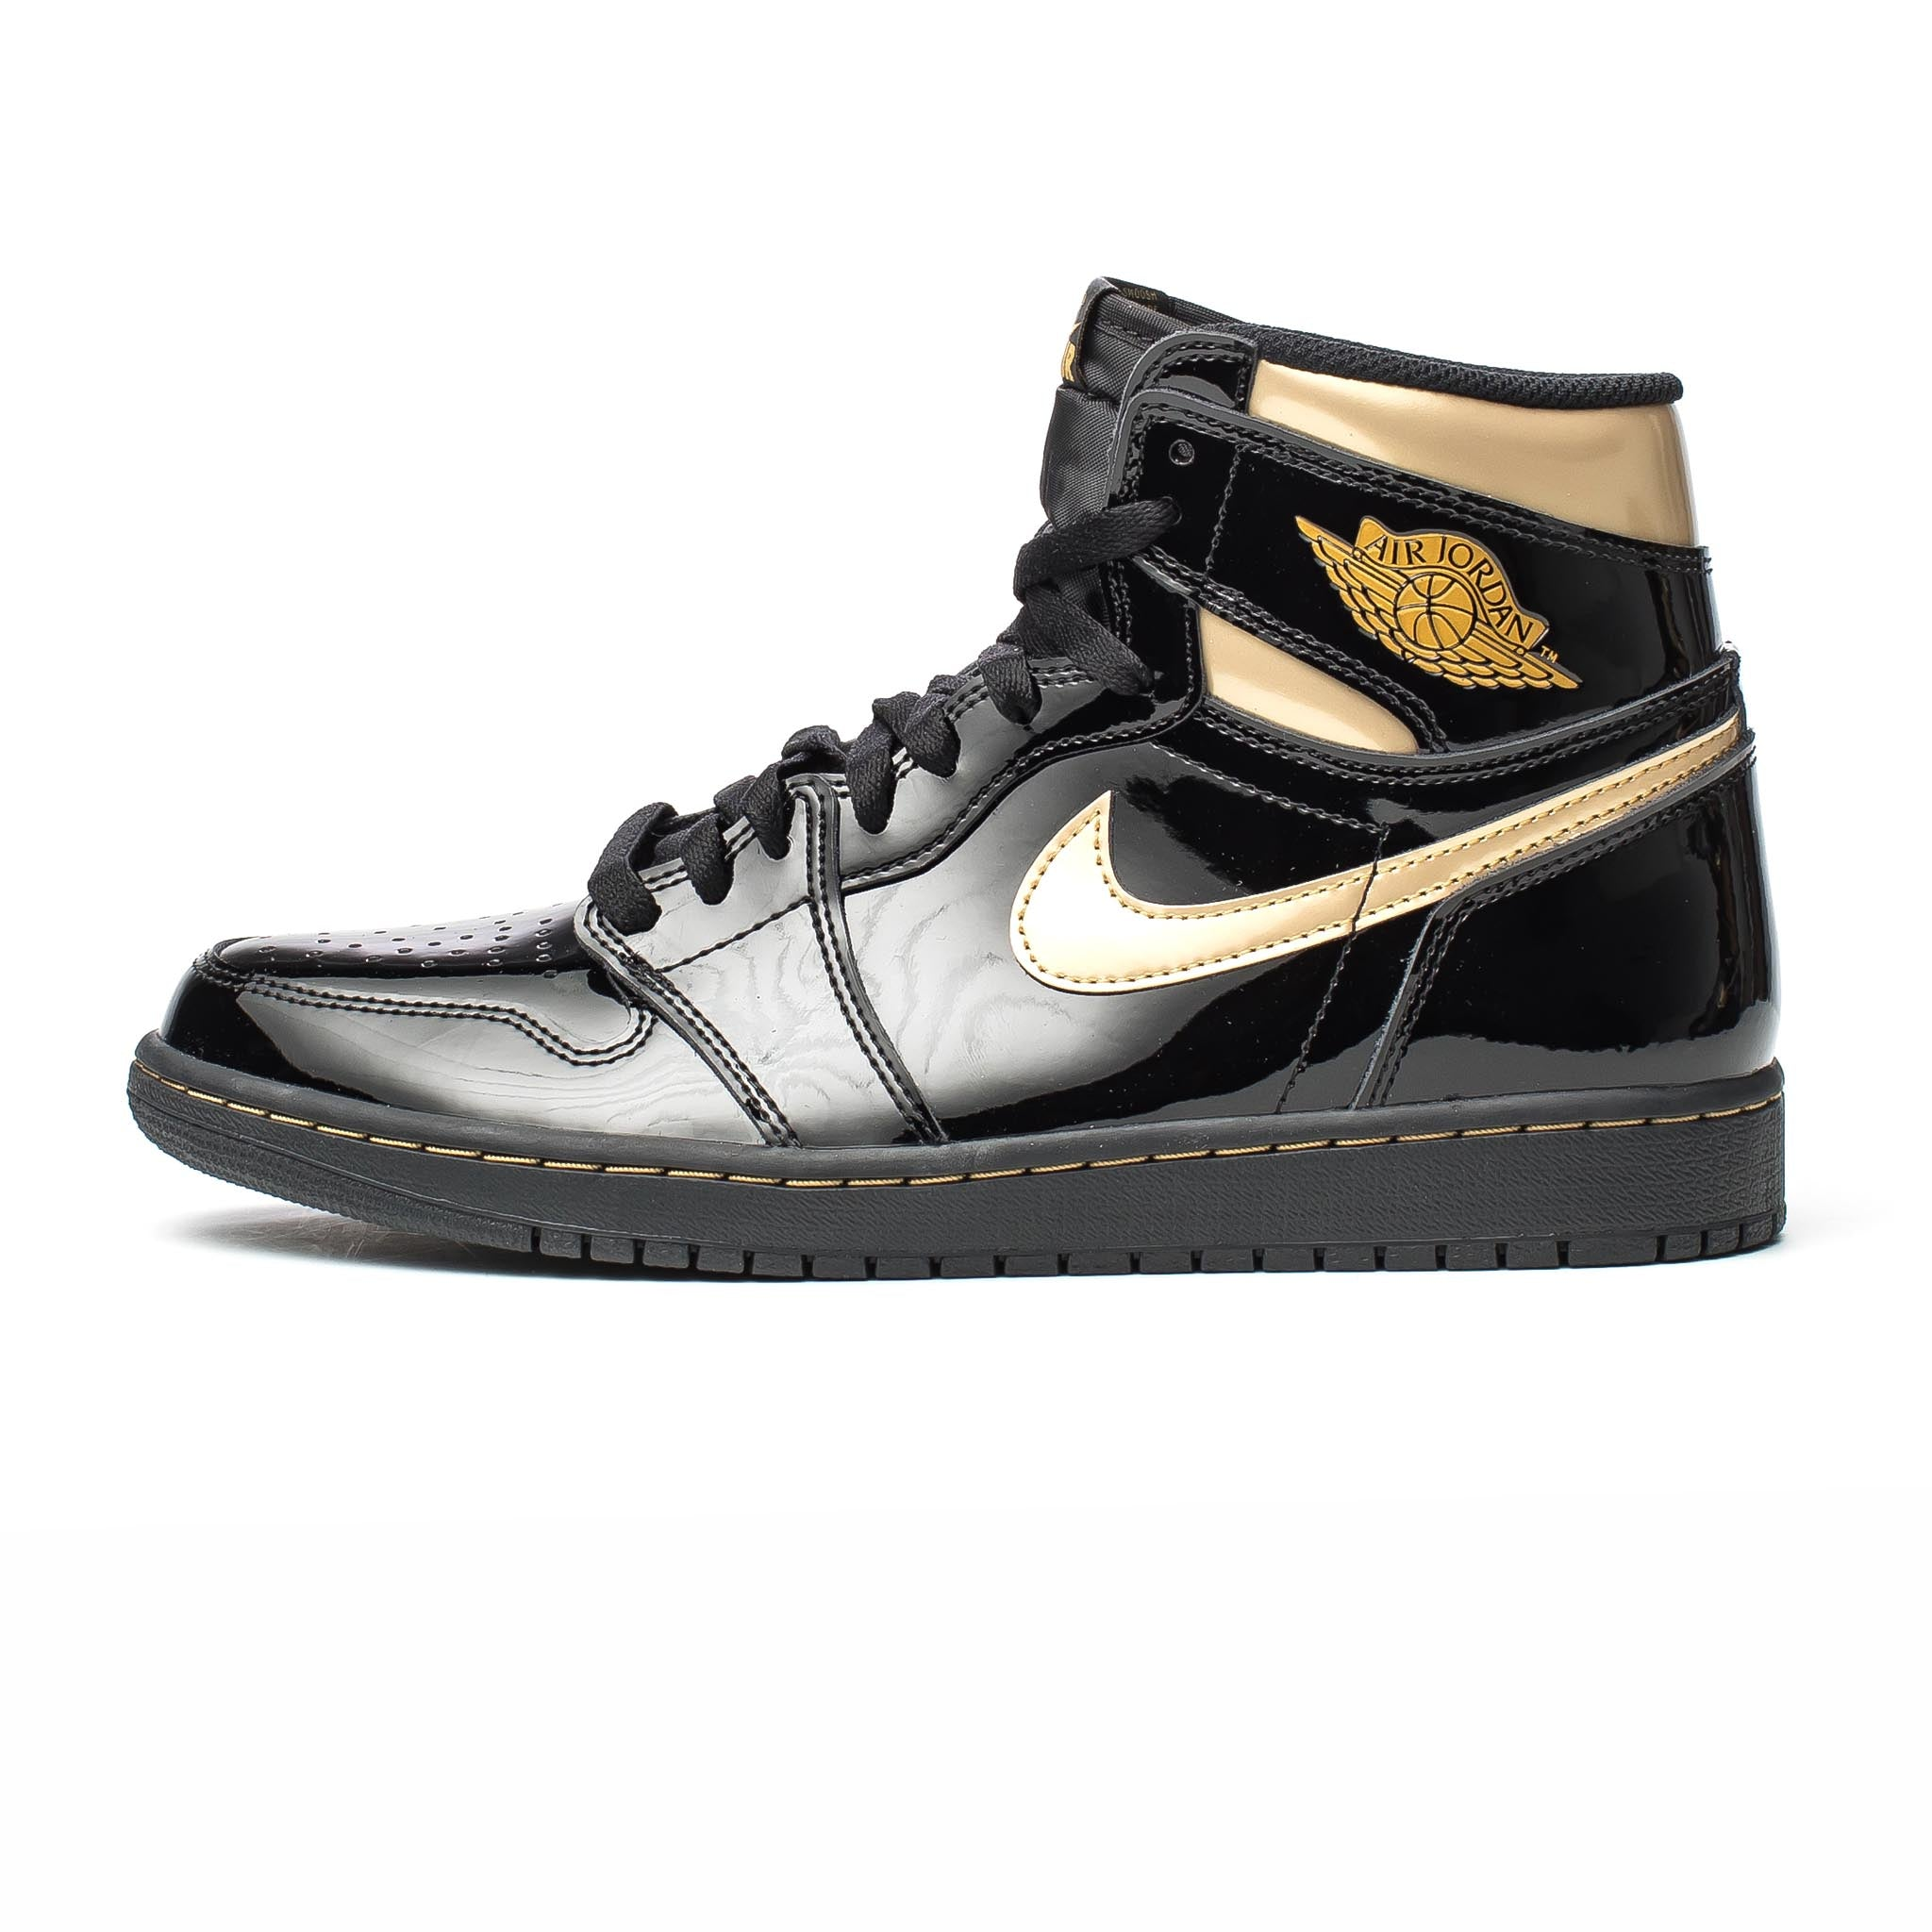 Air Jordan 1 Retro High OG Patent 'Black/Metallic Gold'